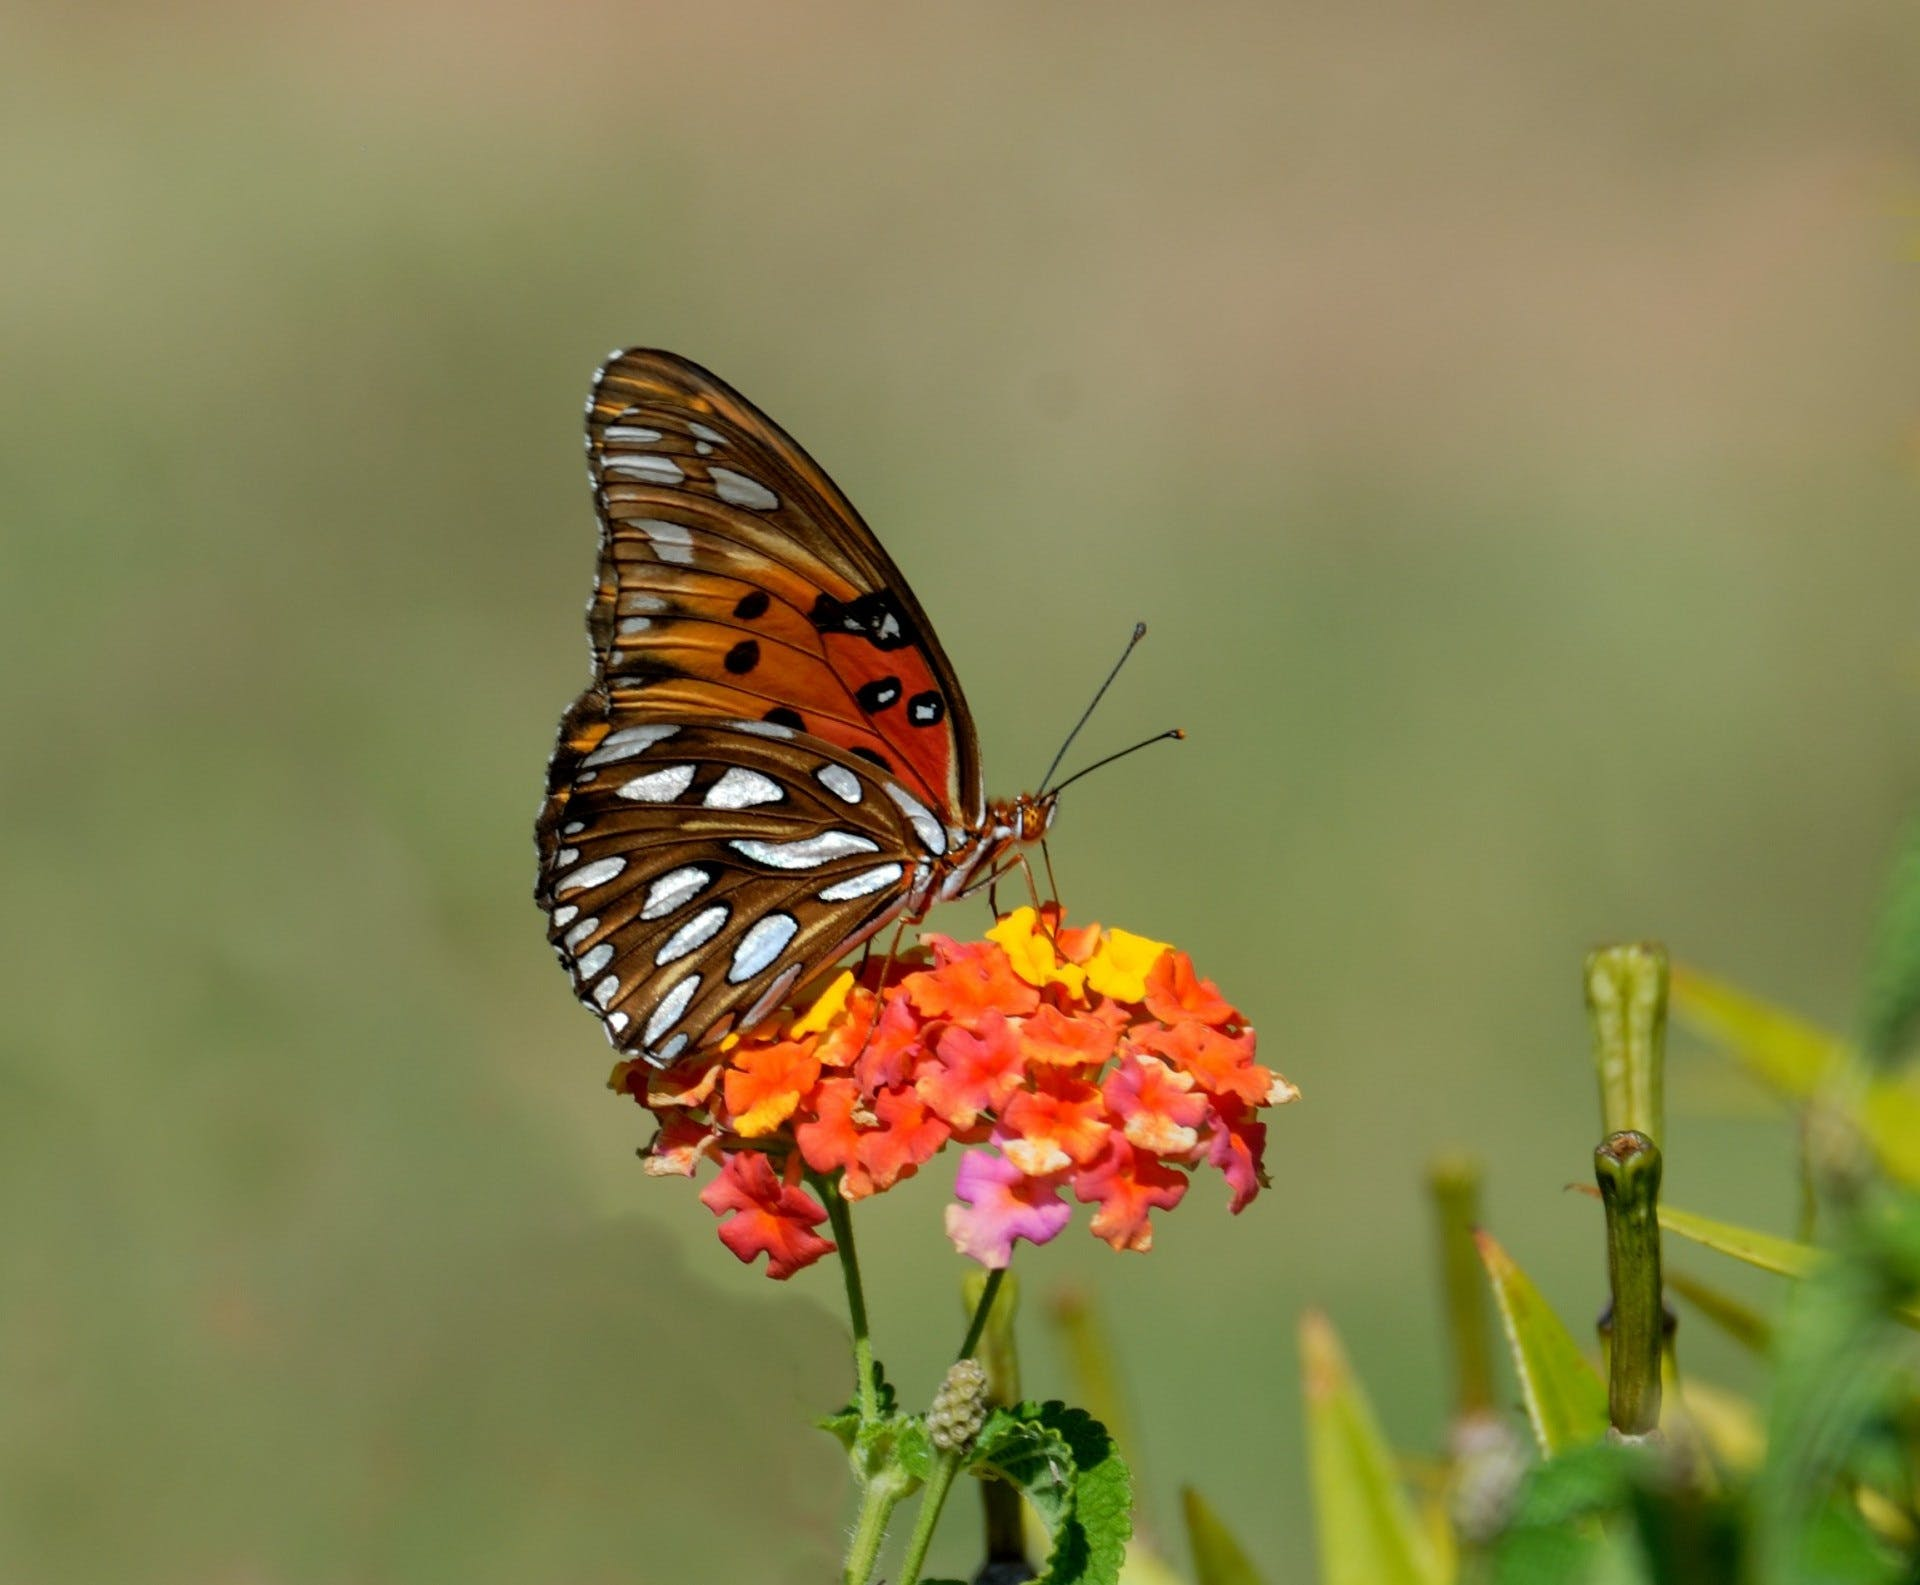 Shallow Focus Photography of Brown and White Butterfly on Orange and Yellow Flowers during Daytime